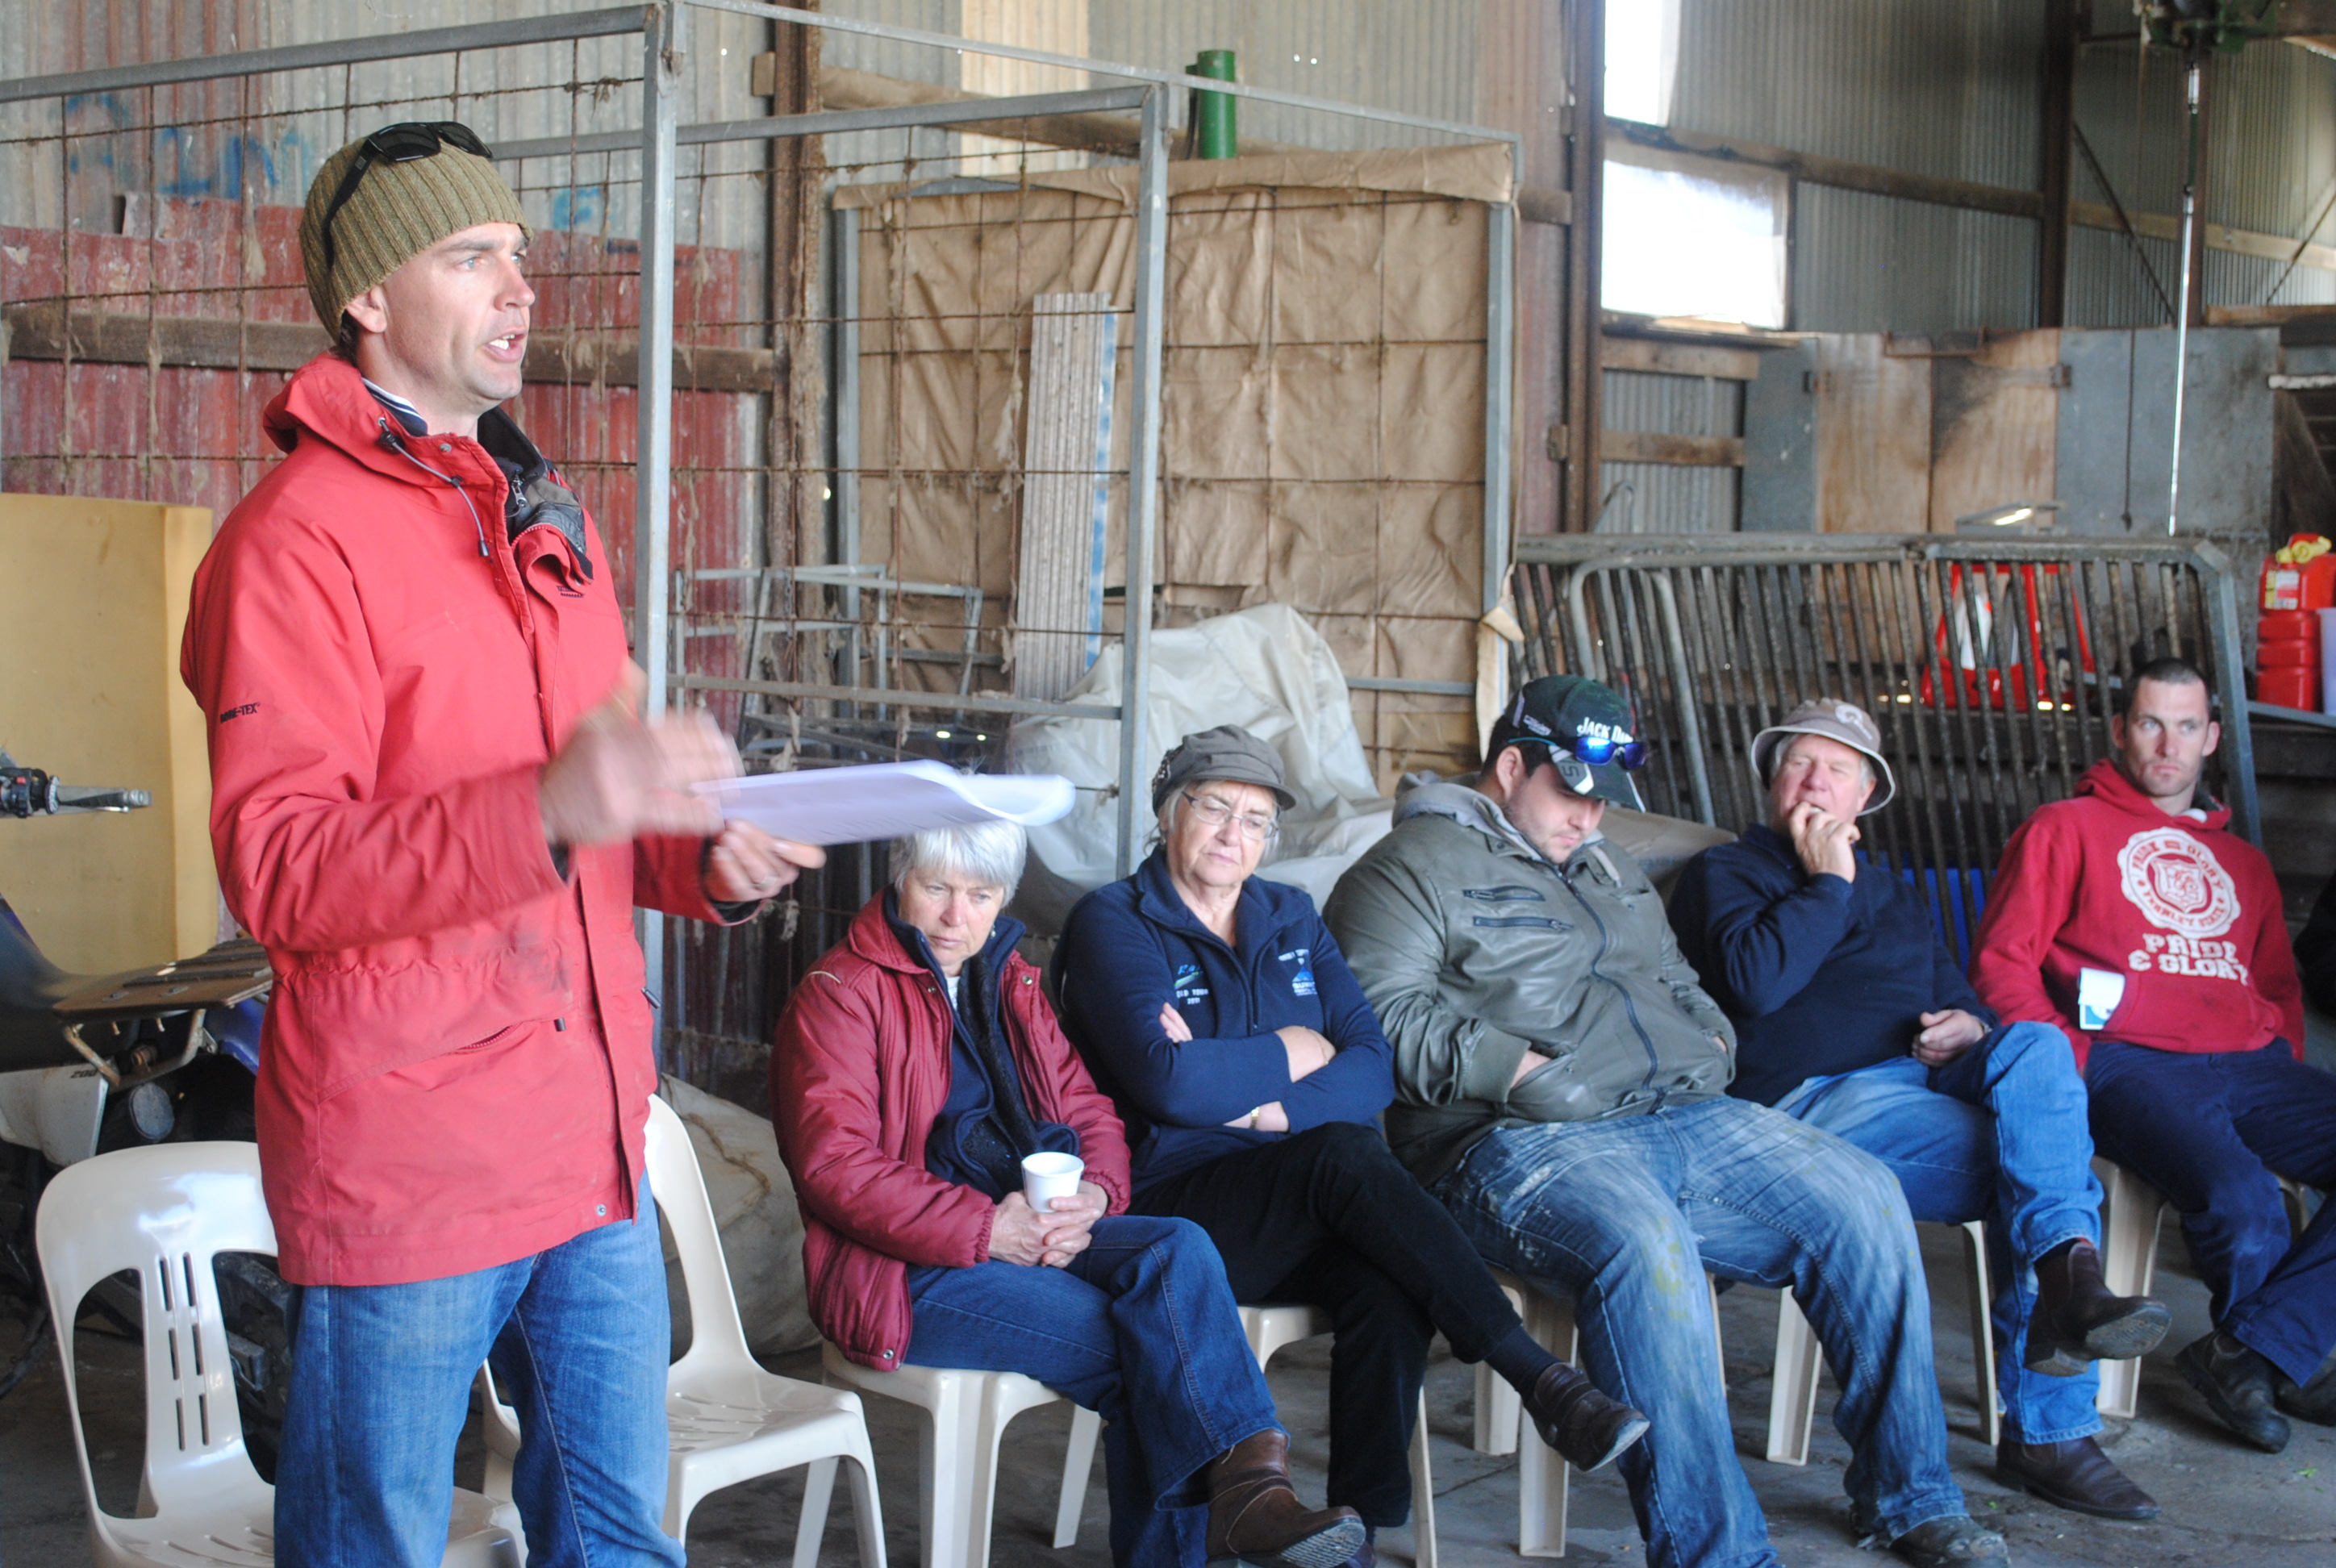 Image of Frank D'Emden from Precision Agronomics Australia briefing an audience on nitrogen 'top-up' decisions